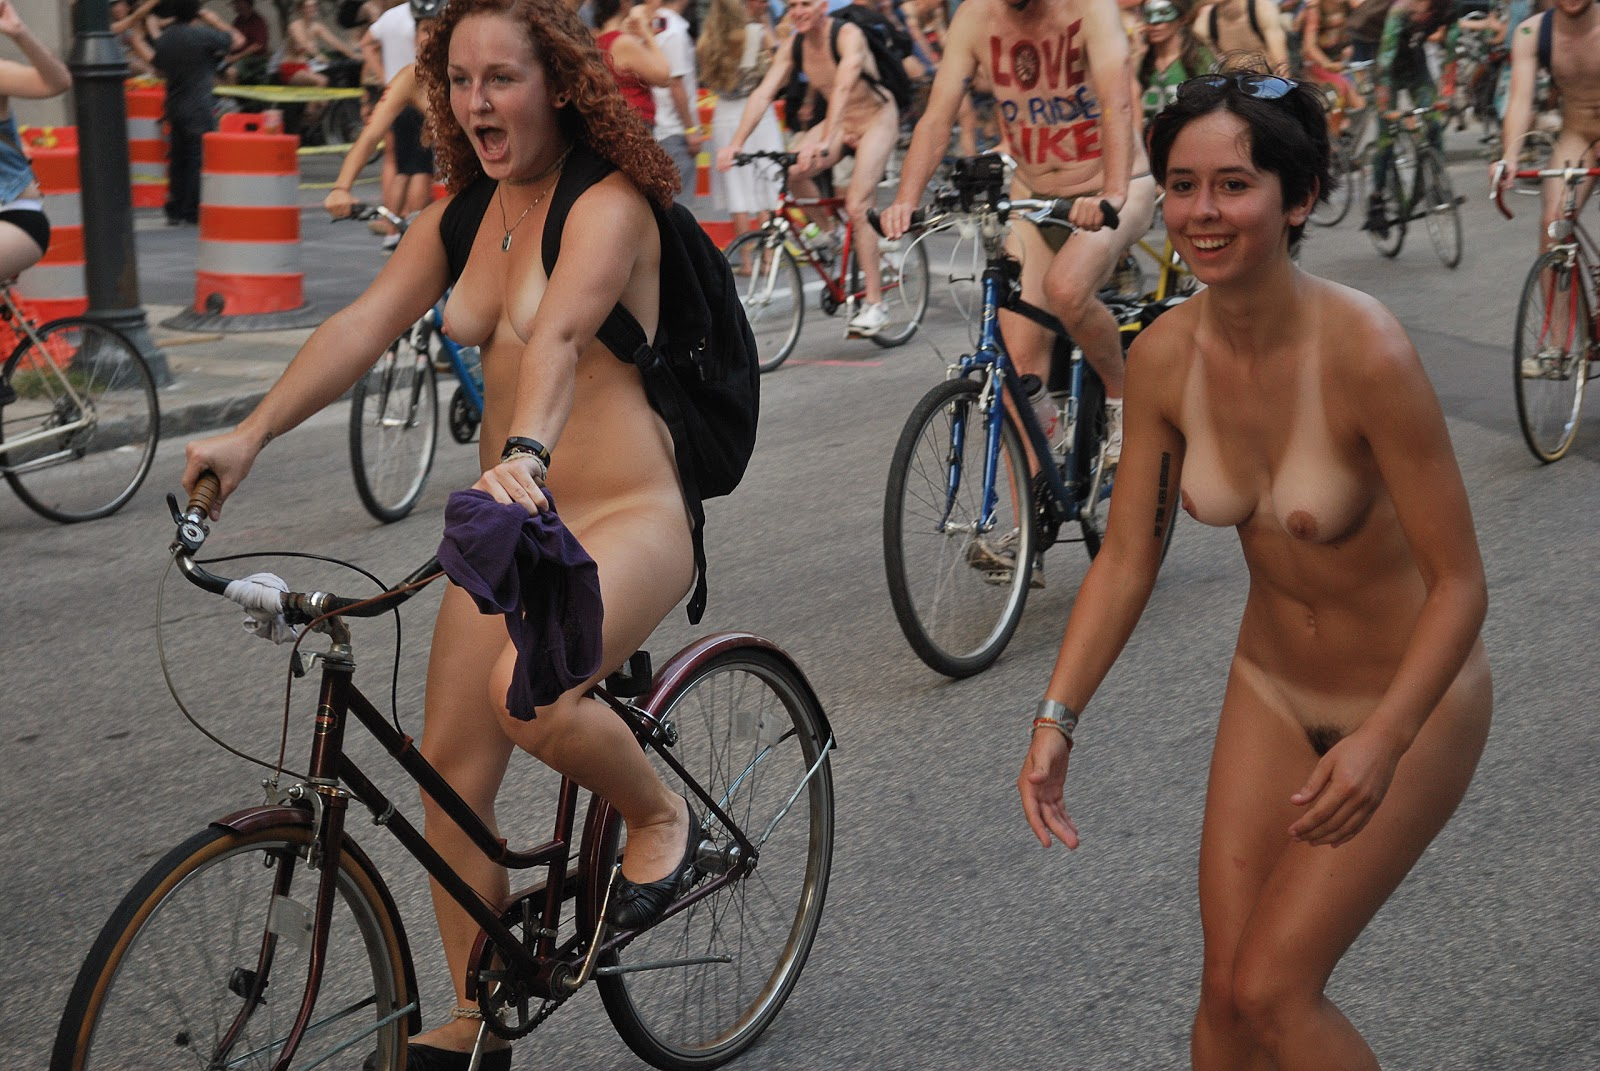 nude bike riders video obliged